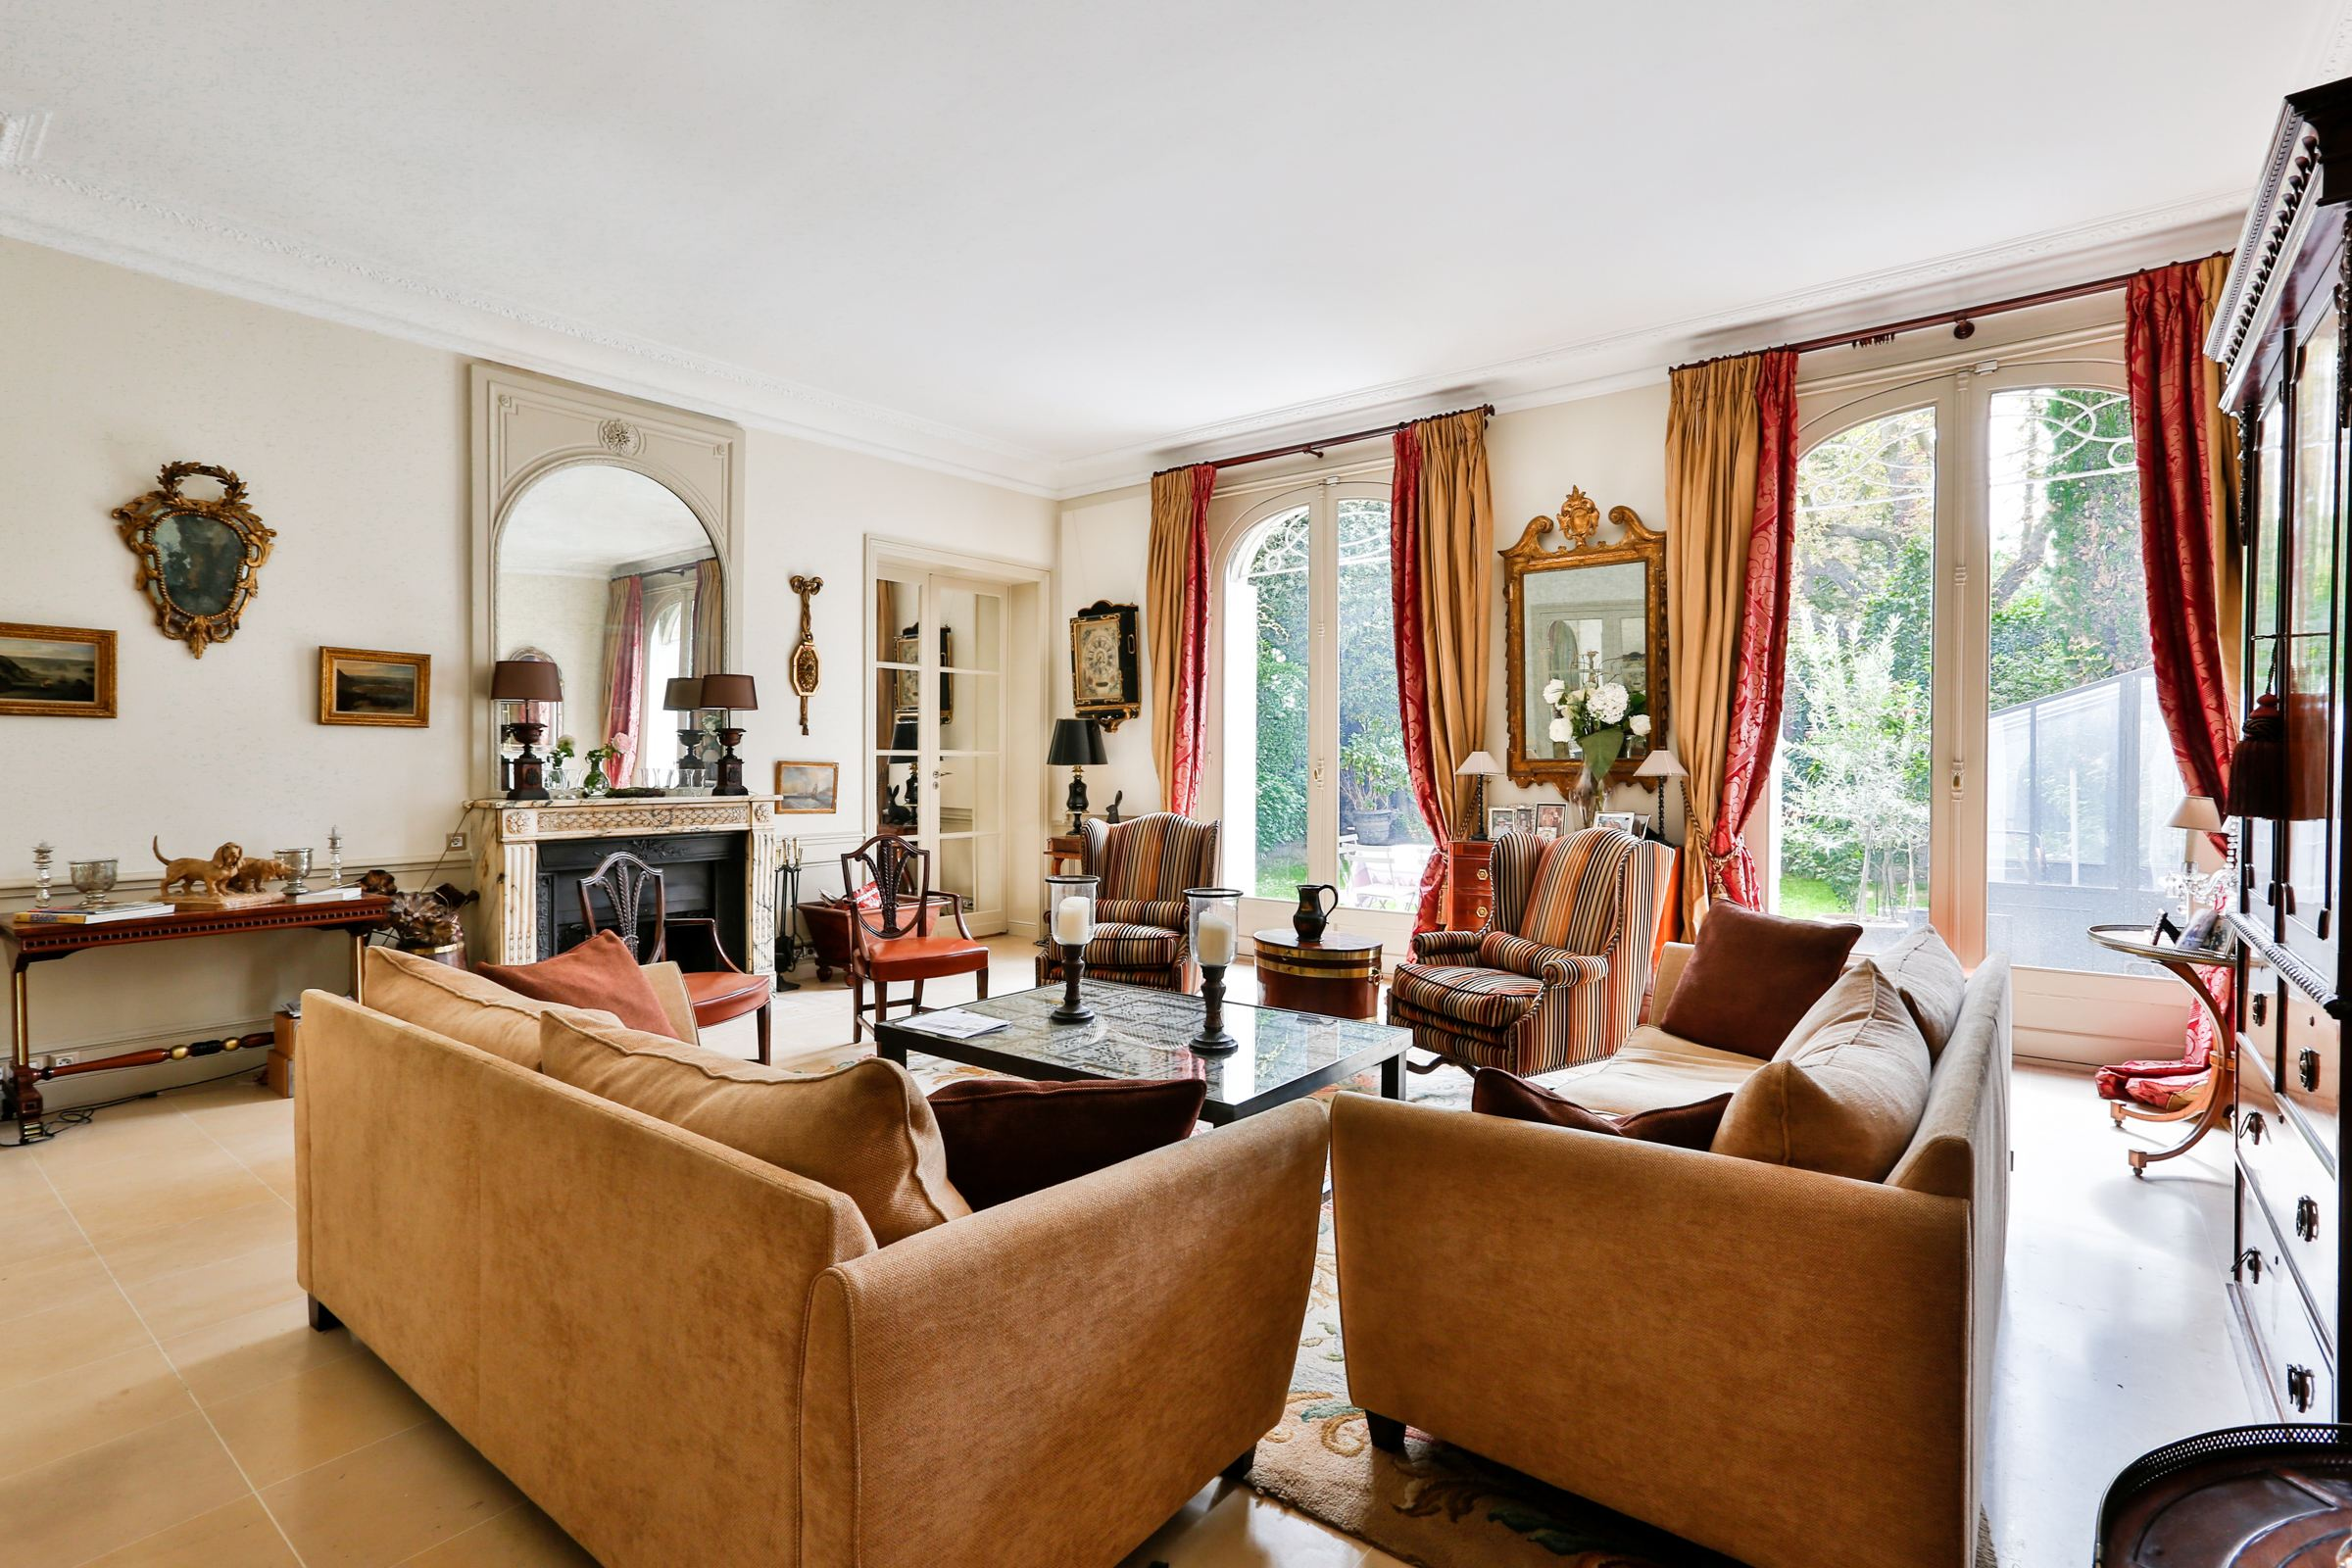 Property For Sale at Neuilly - A 187 sq.m apartment + a 100 sq.m garden